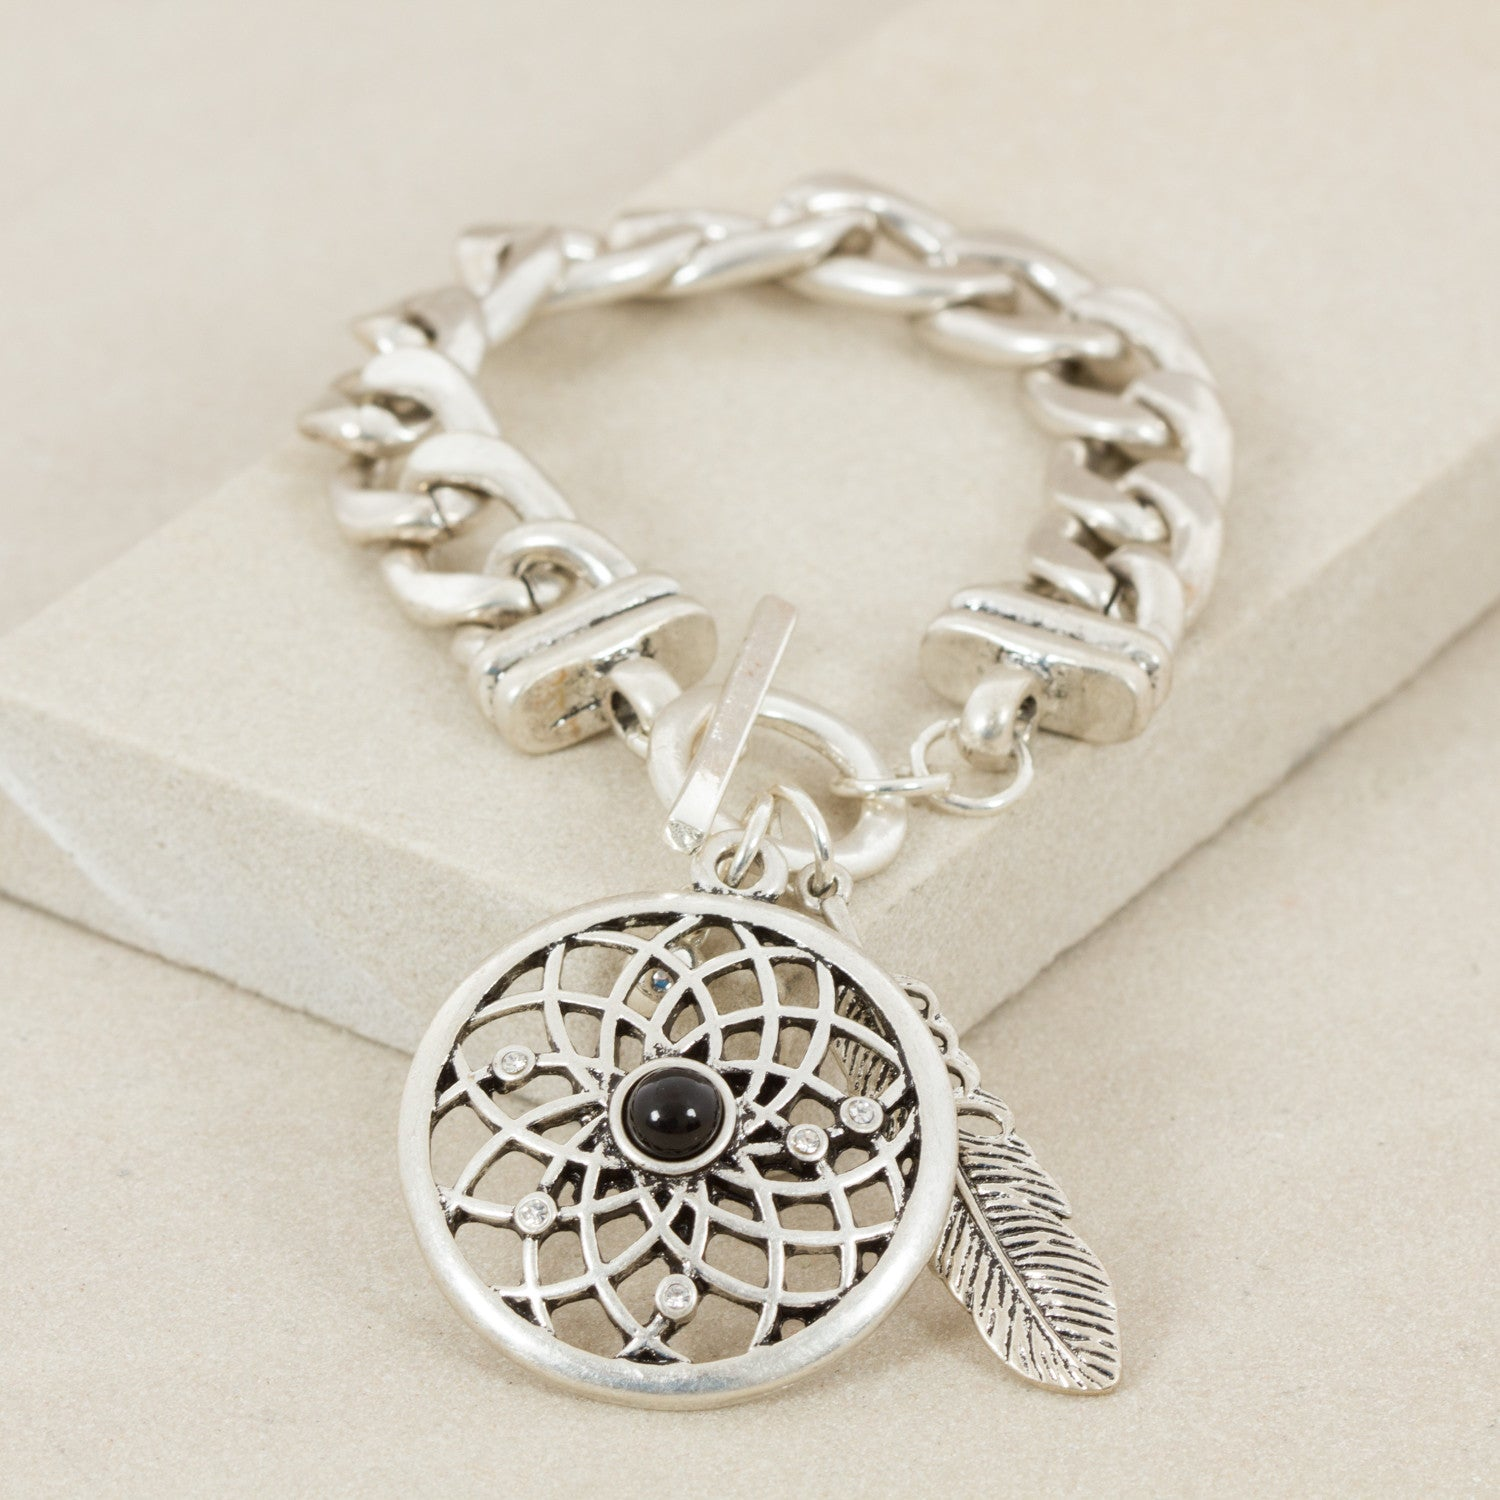 Filigree Dreamcatcher & Leaf Chain Bracelet - Japri